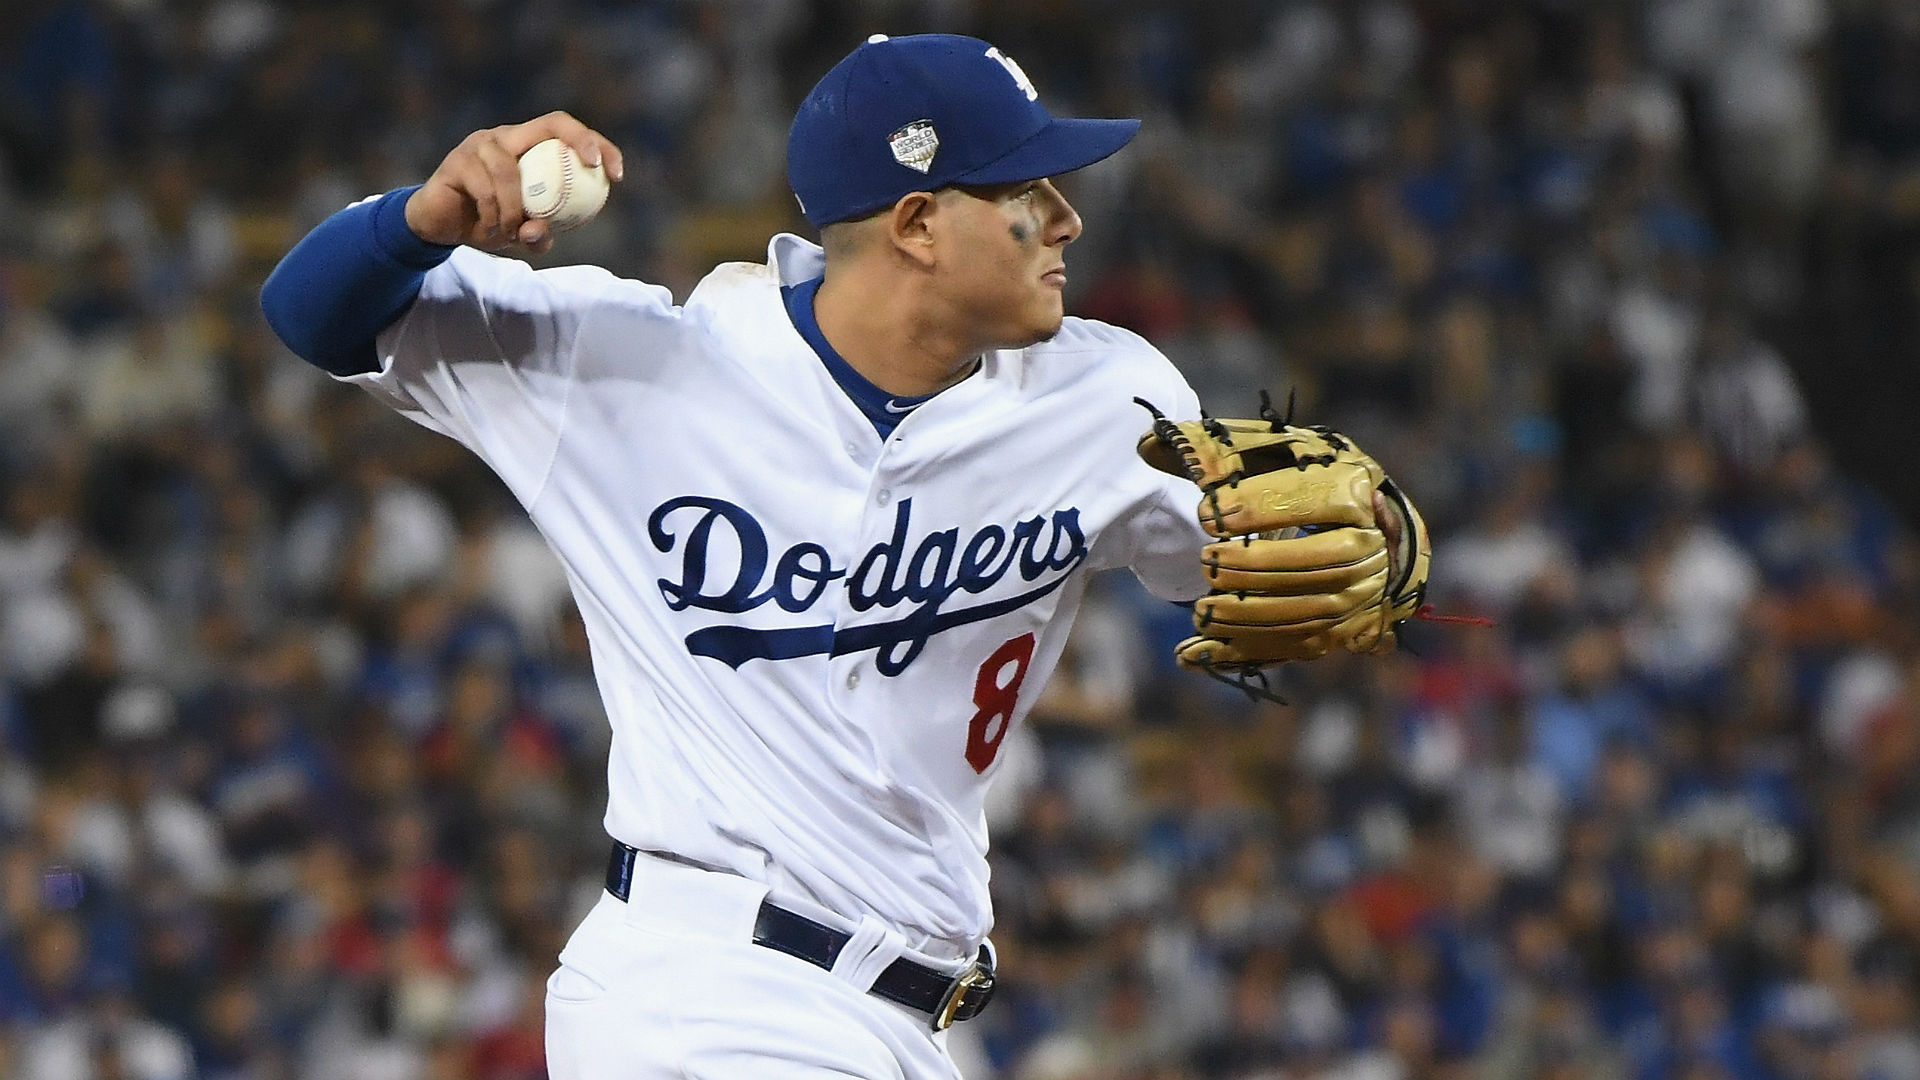 MLB hot stove: Yankees continue to 'check in' on Manny Machado, report says